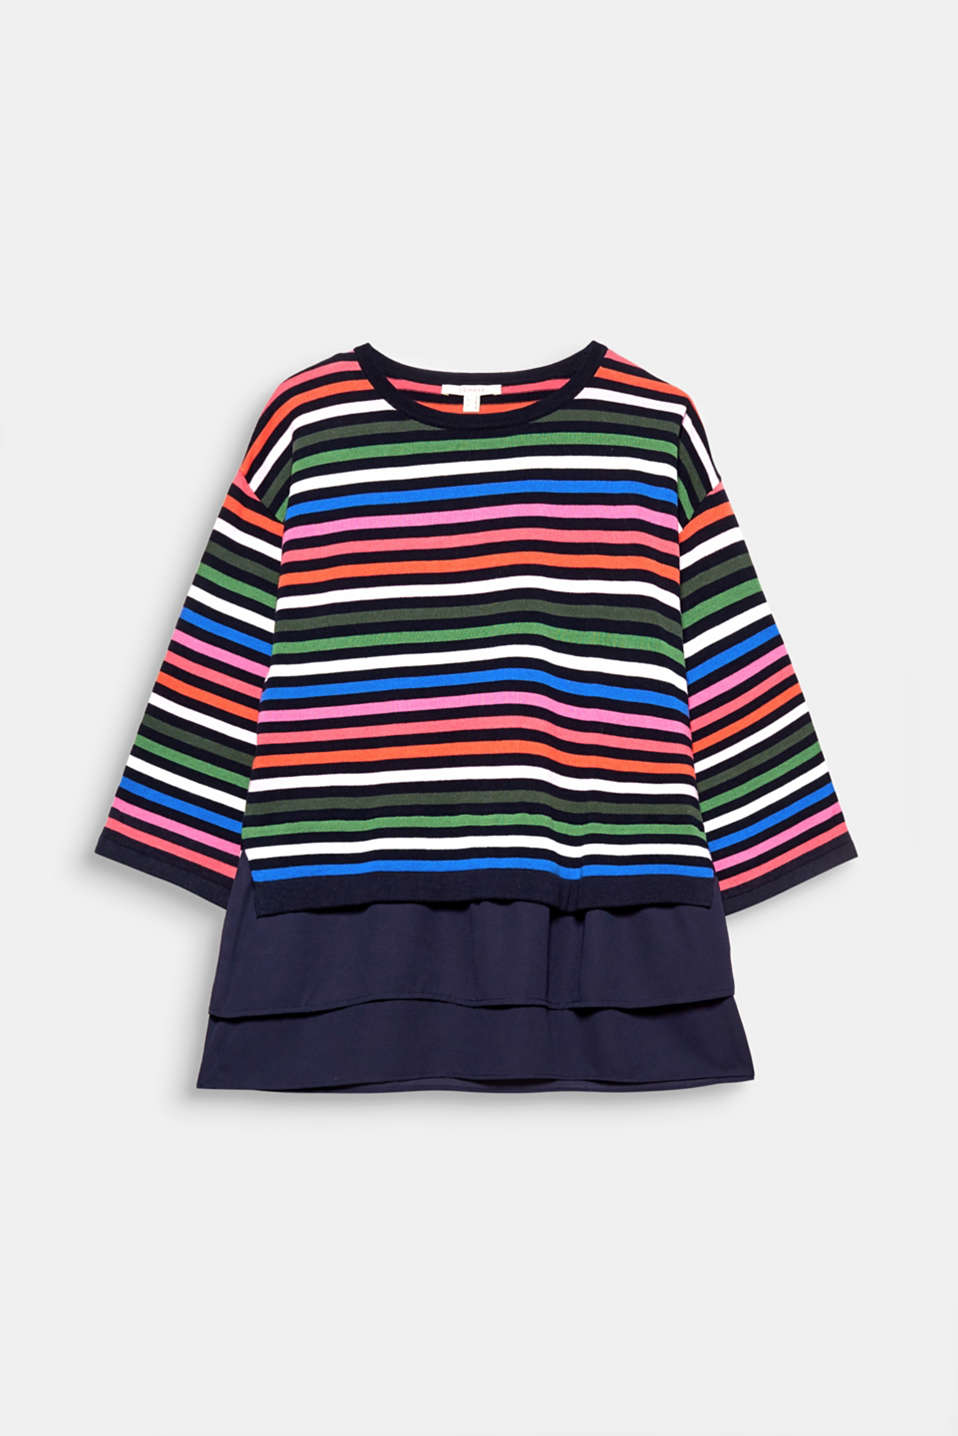 The layered chiffon hem gives this colourfully striped jumper in fine cotton an extra light feeling!